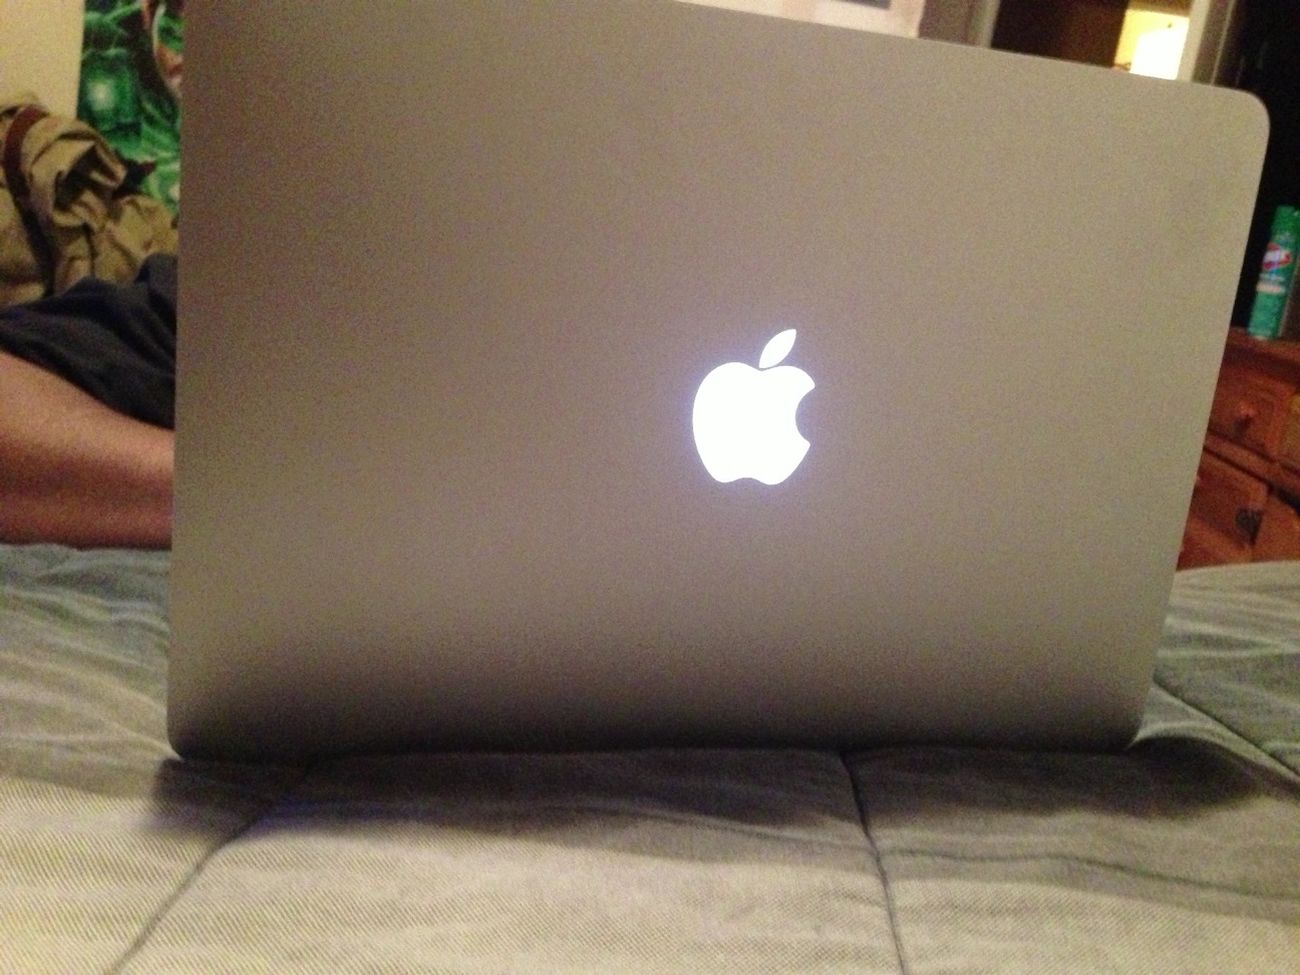 On The MacBook